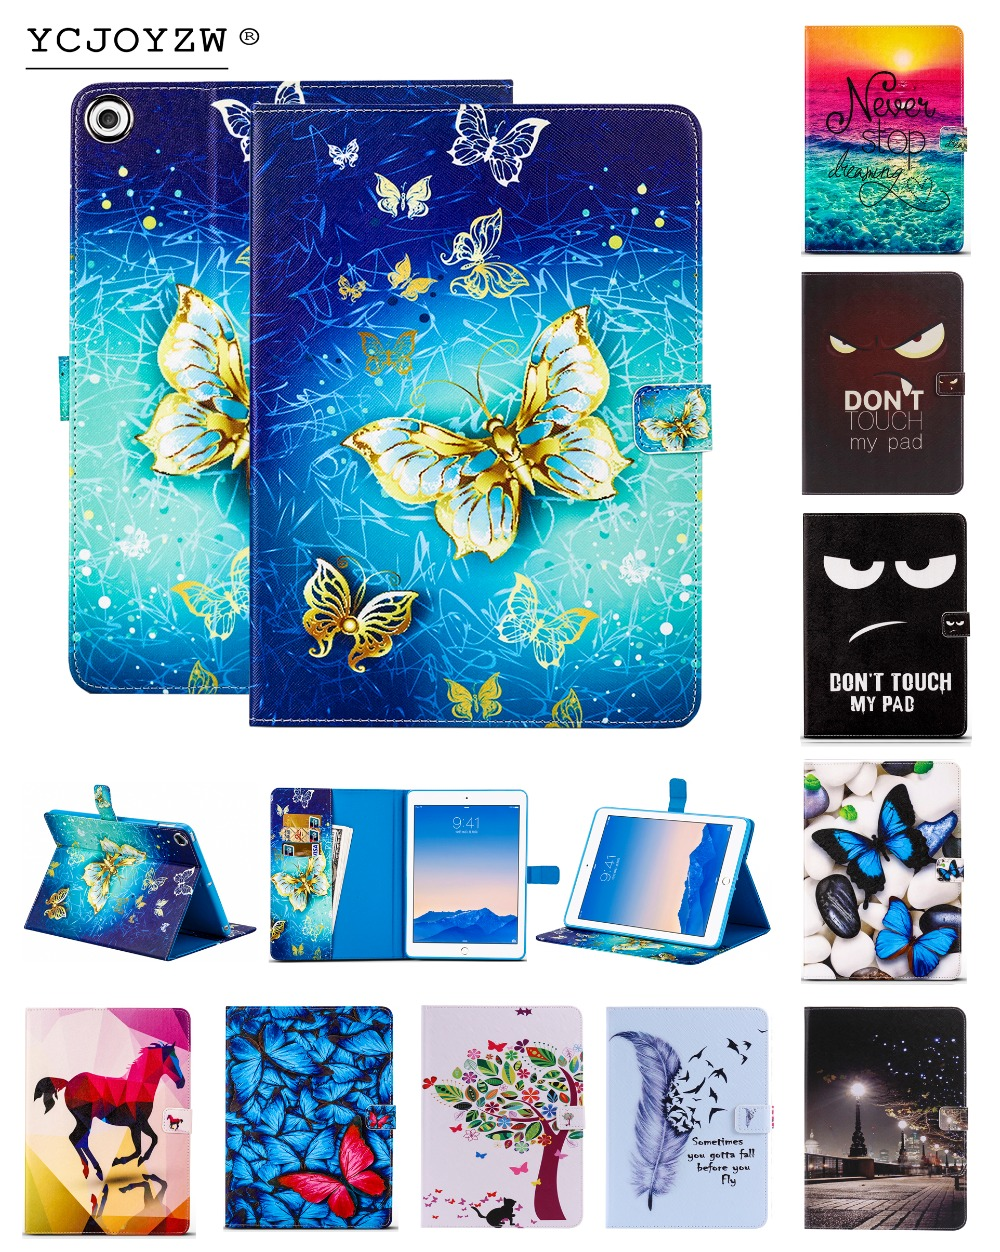 Card package cartoon Case for Apple New iPad 9.7 to 2017/2018 . PU leather cover+TPU soft Case-Smart sleep wake up case YCJOYZW case for apple 2017 2018 new ipad 9 7 inch ycjoyzw pu leather slim magnetic front smart cover skin hard pc back sleep wake up